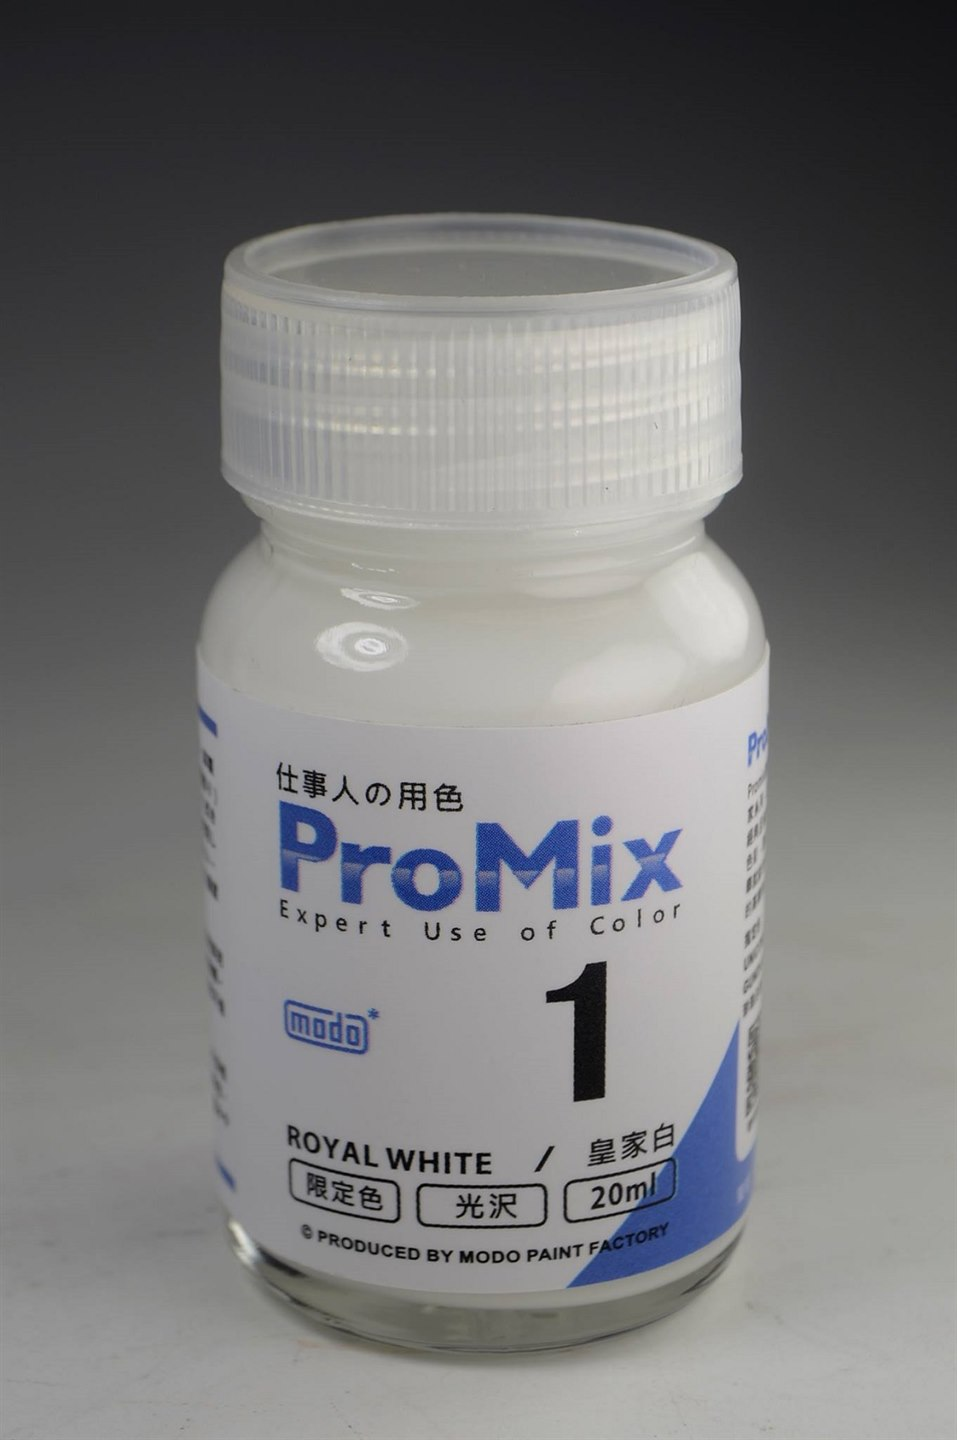 MODO PM-01 PROMIX 1 - Royal White 20ML